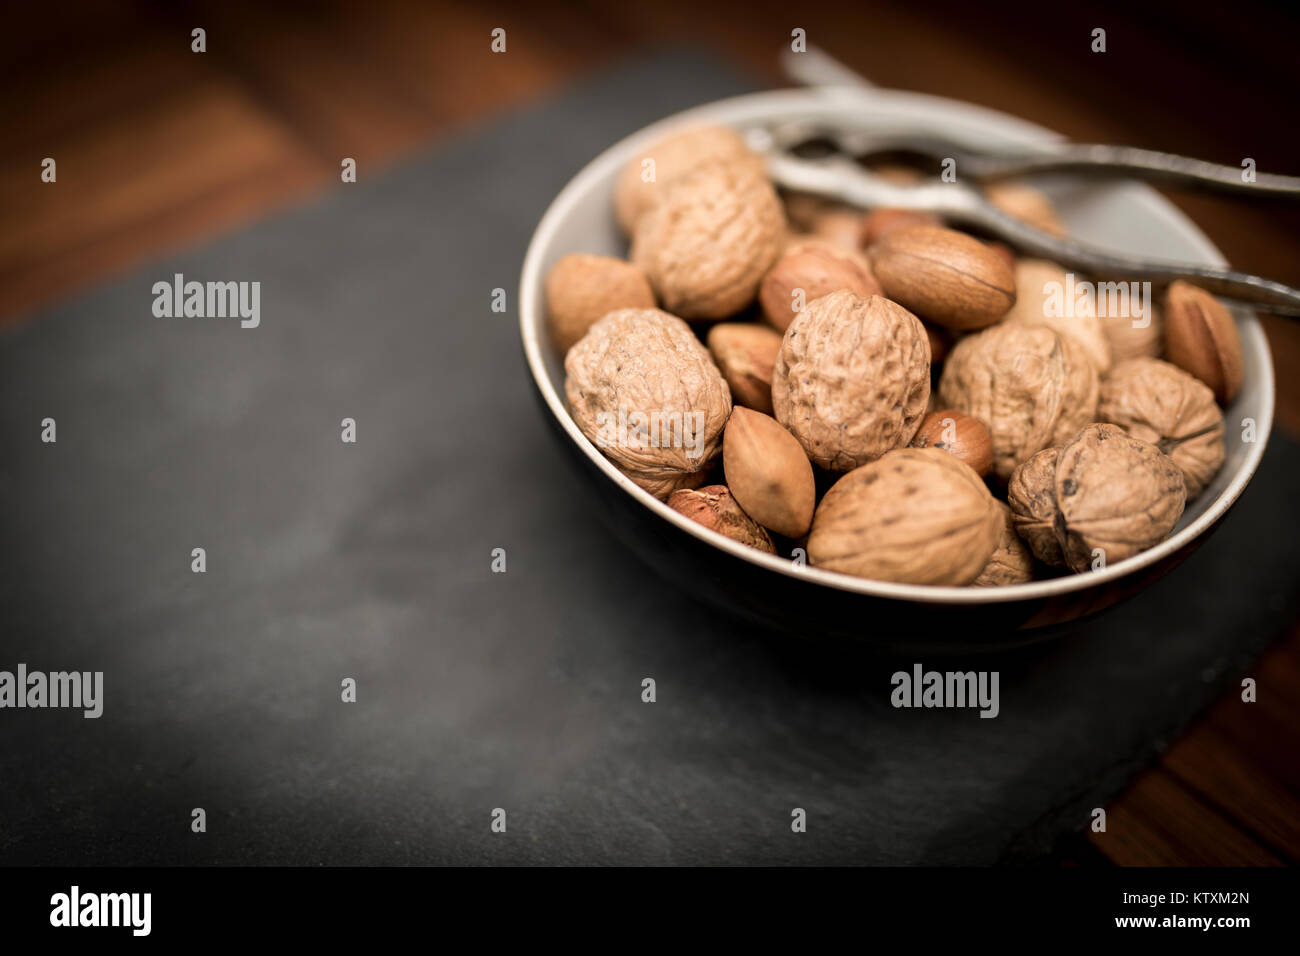 A bowl of mixed whole nuts in their shells including walnuts, hazelnuts, almonds and pecans with a nut cracker - Stock Image